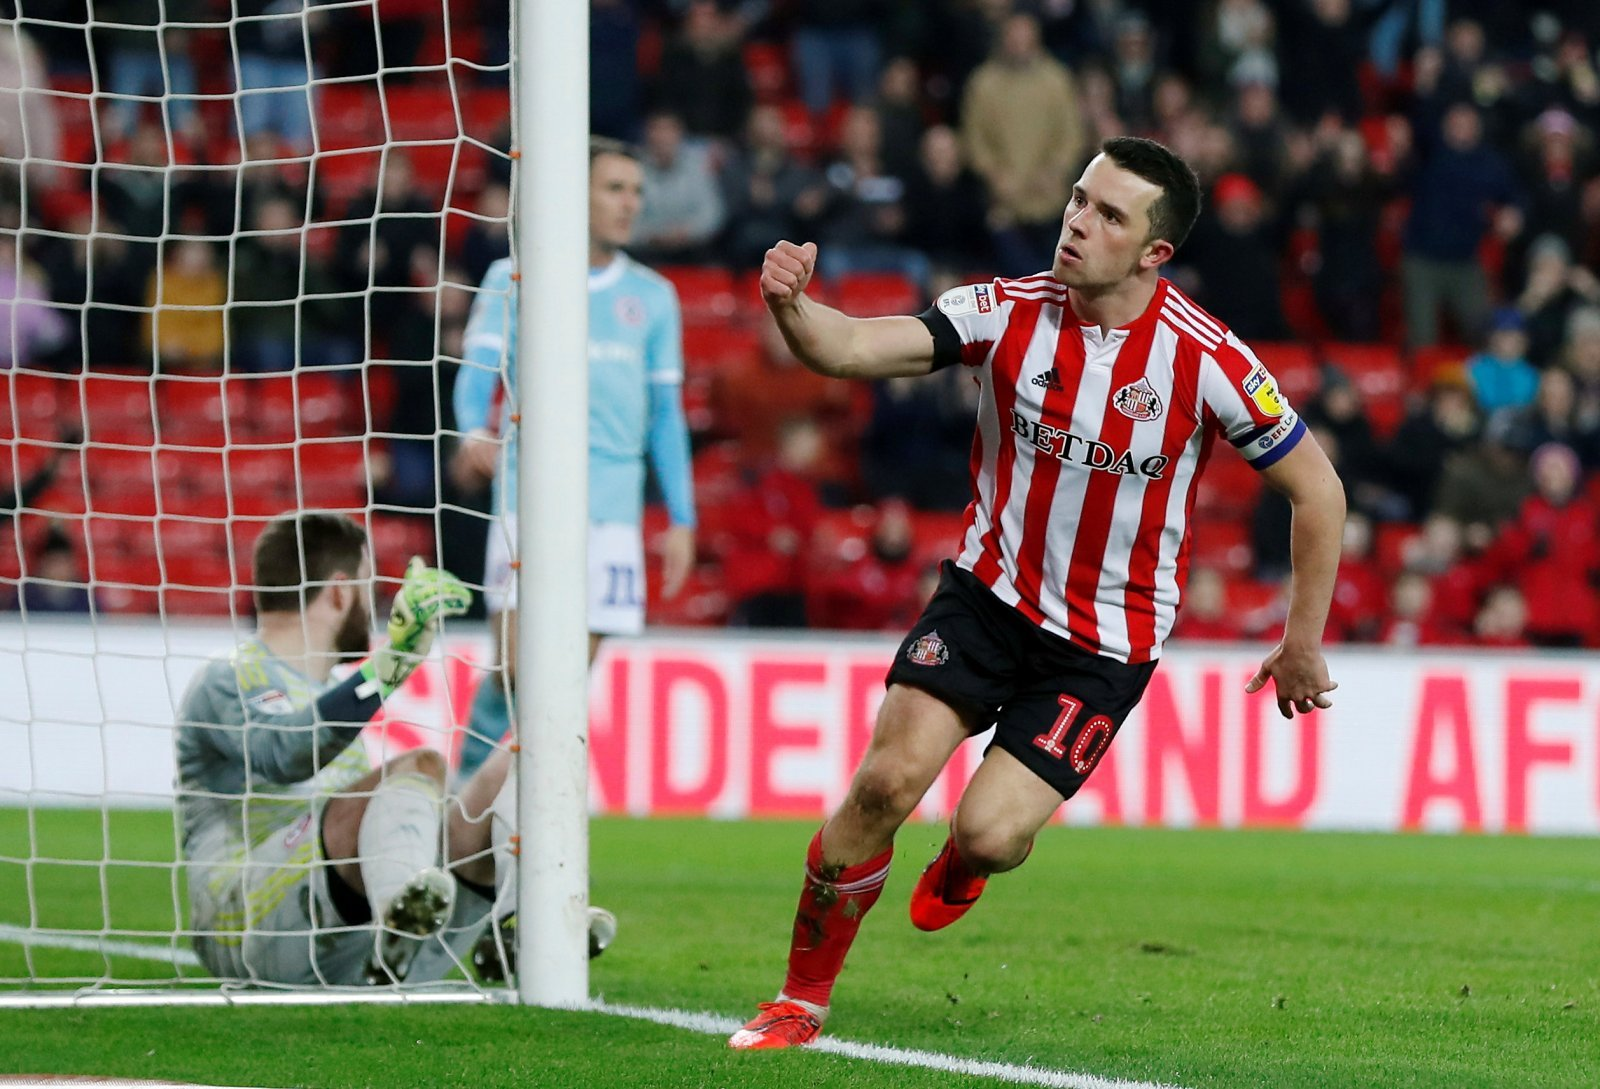 Sunderland: Honeyman has proved doubters wrong